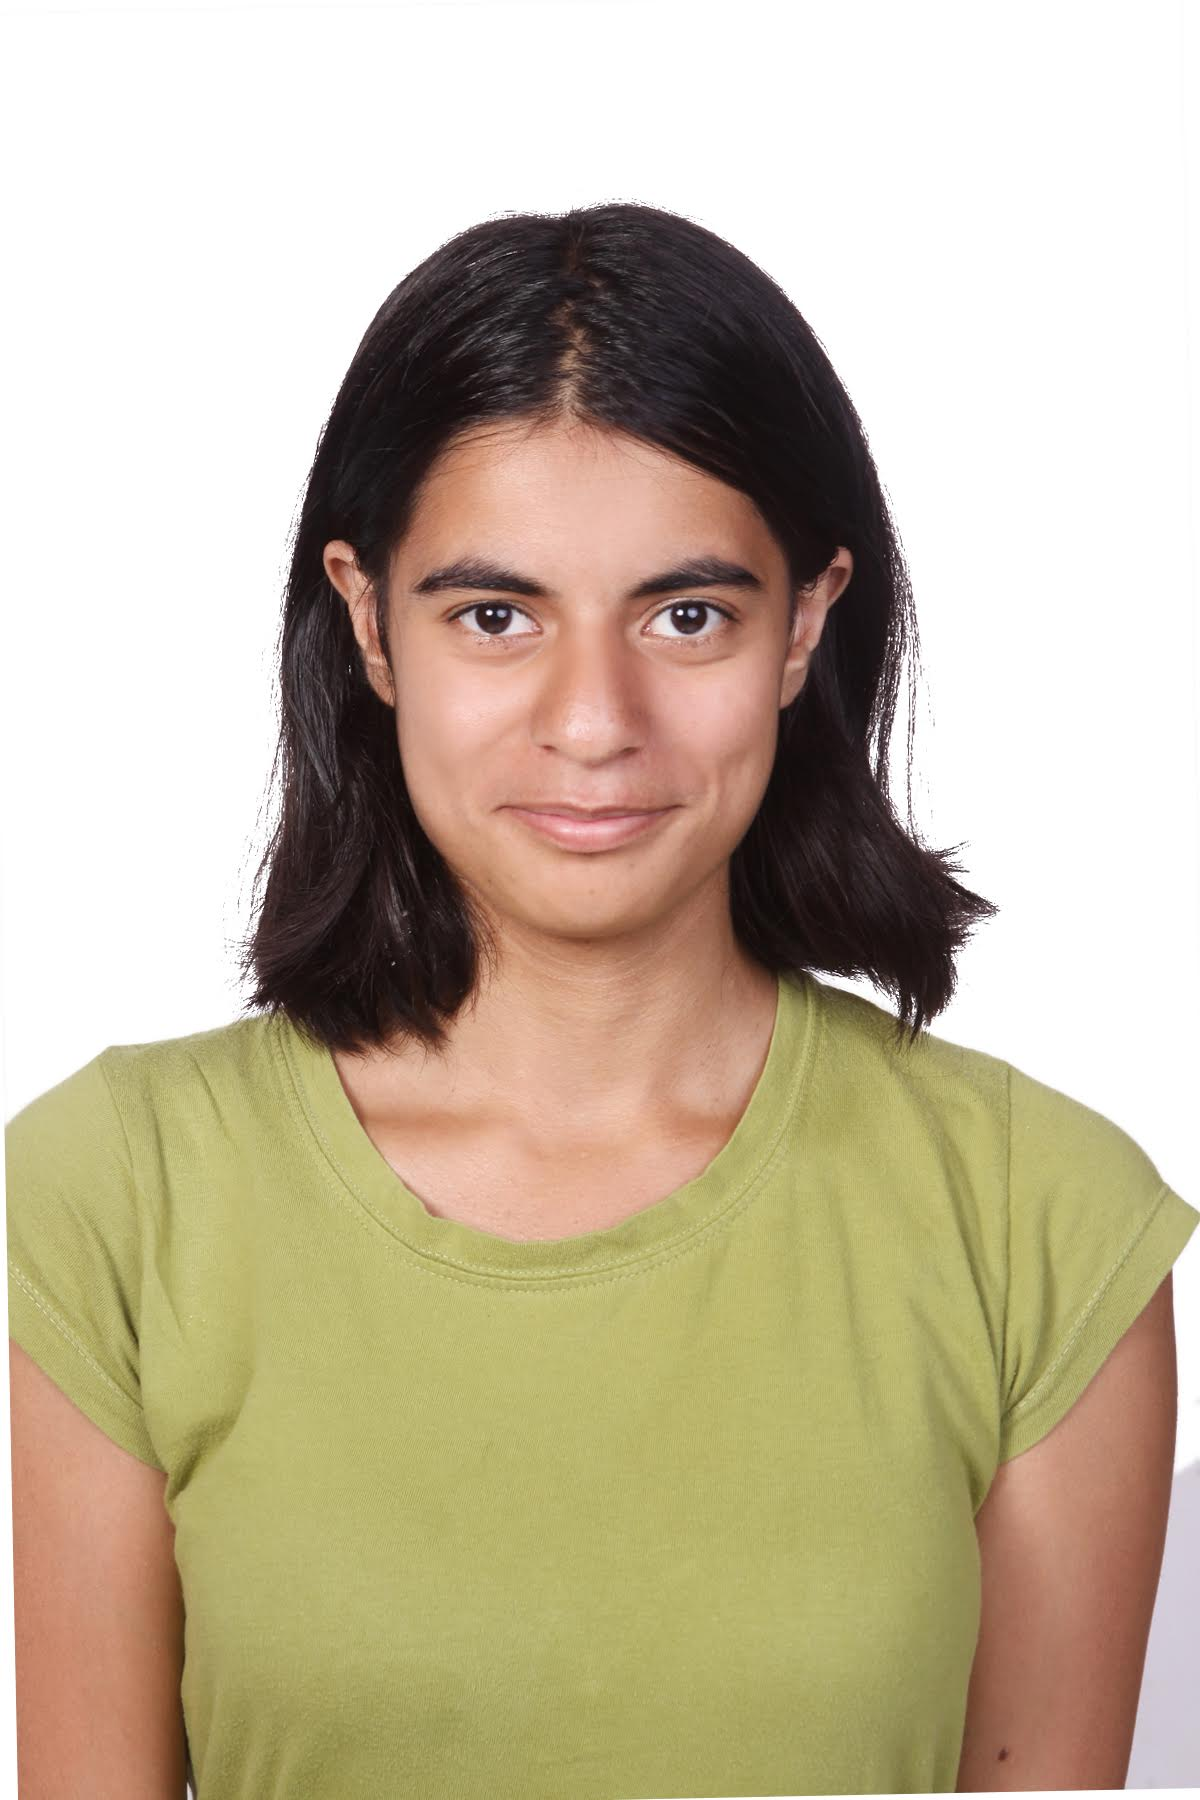 Akanksha Vyas, Cofounder   Engineer & Mathematician specializing in building scalable 3D Software Solutions at industry pioneers. Theoretical Computer Scientist with a focus on machine learning and probabilistic decision systems.  Previously At: Autodesk, Body Labs, SOLS    Akanksha's LinkedIn Profile